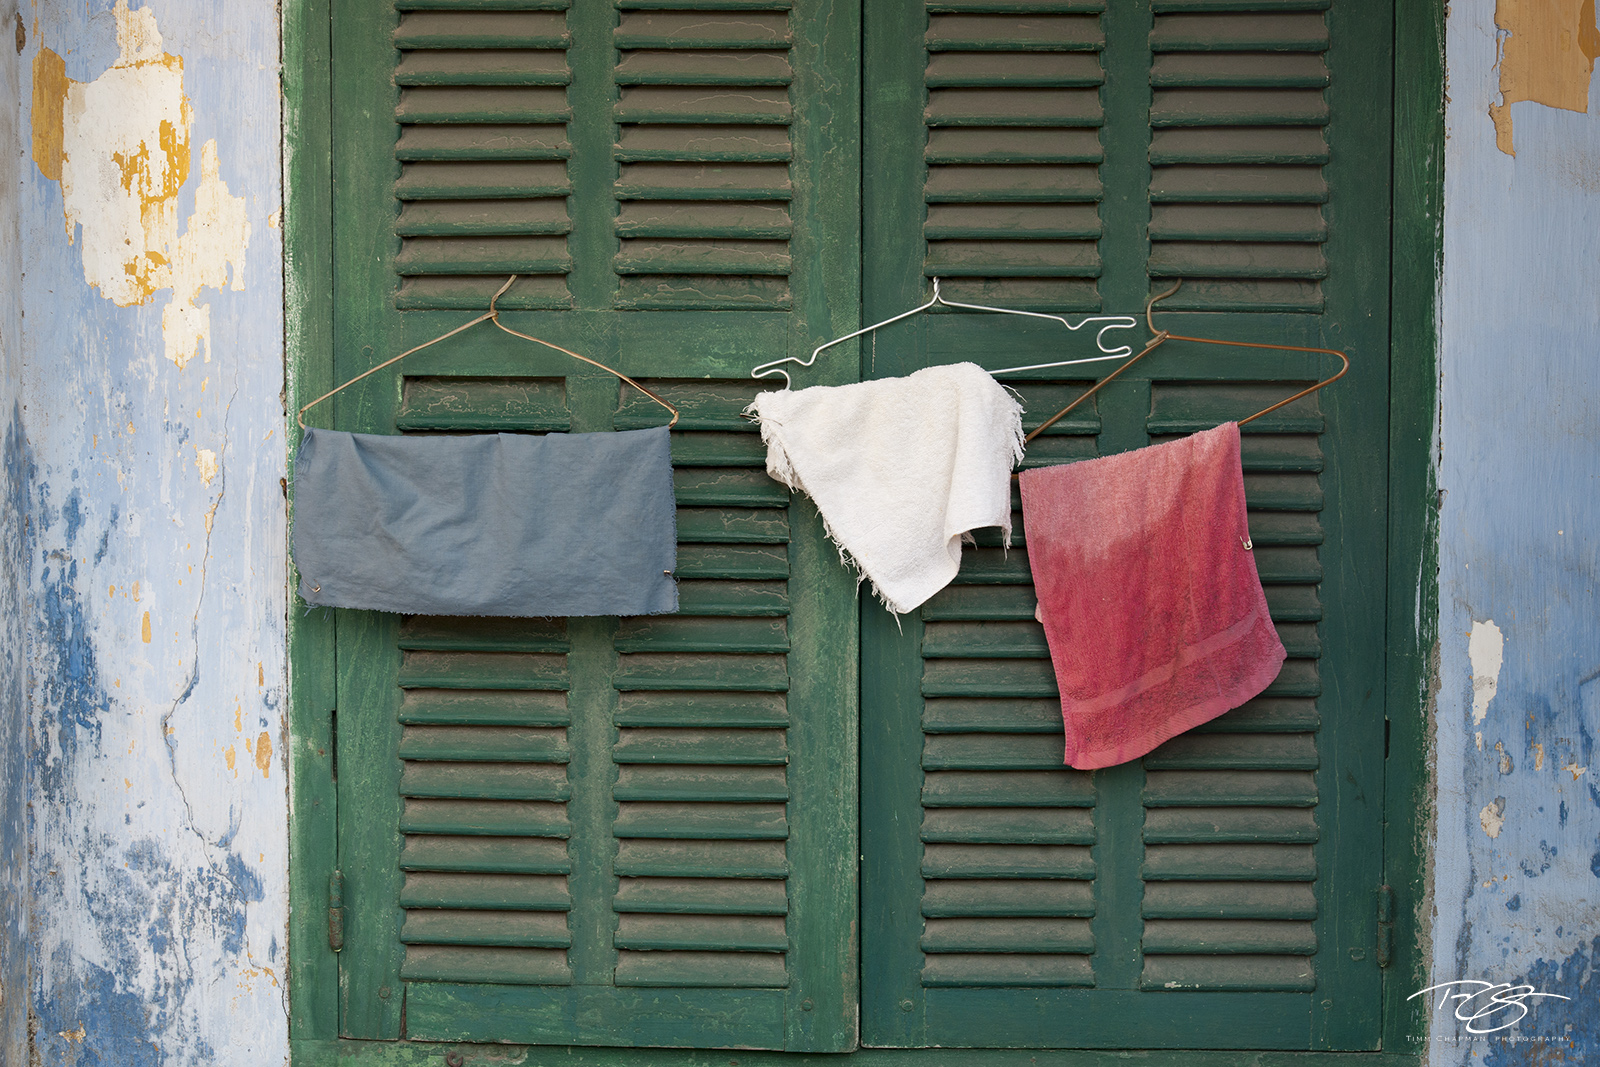 vietnam, vietnam, blue, green, red, shutters, peeling paint, window, carribean, caribbean, worn, rustic, hoi an